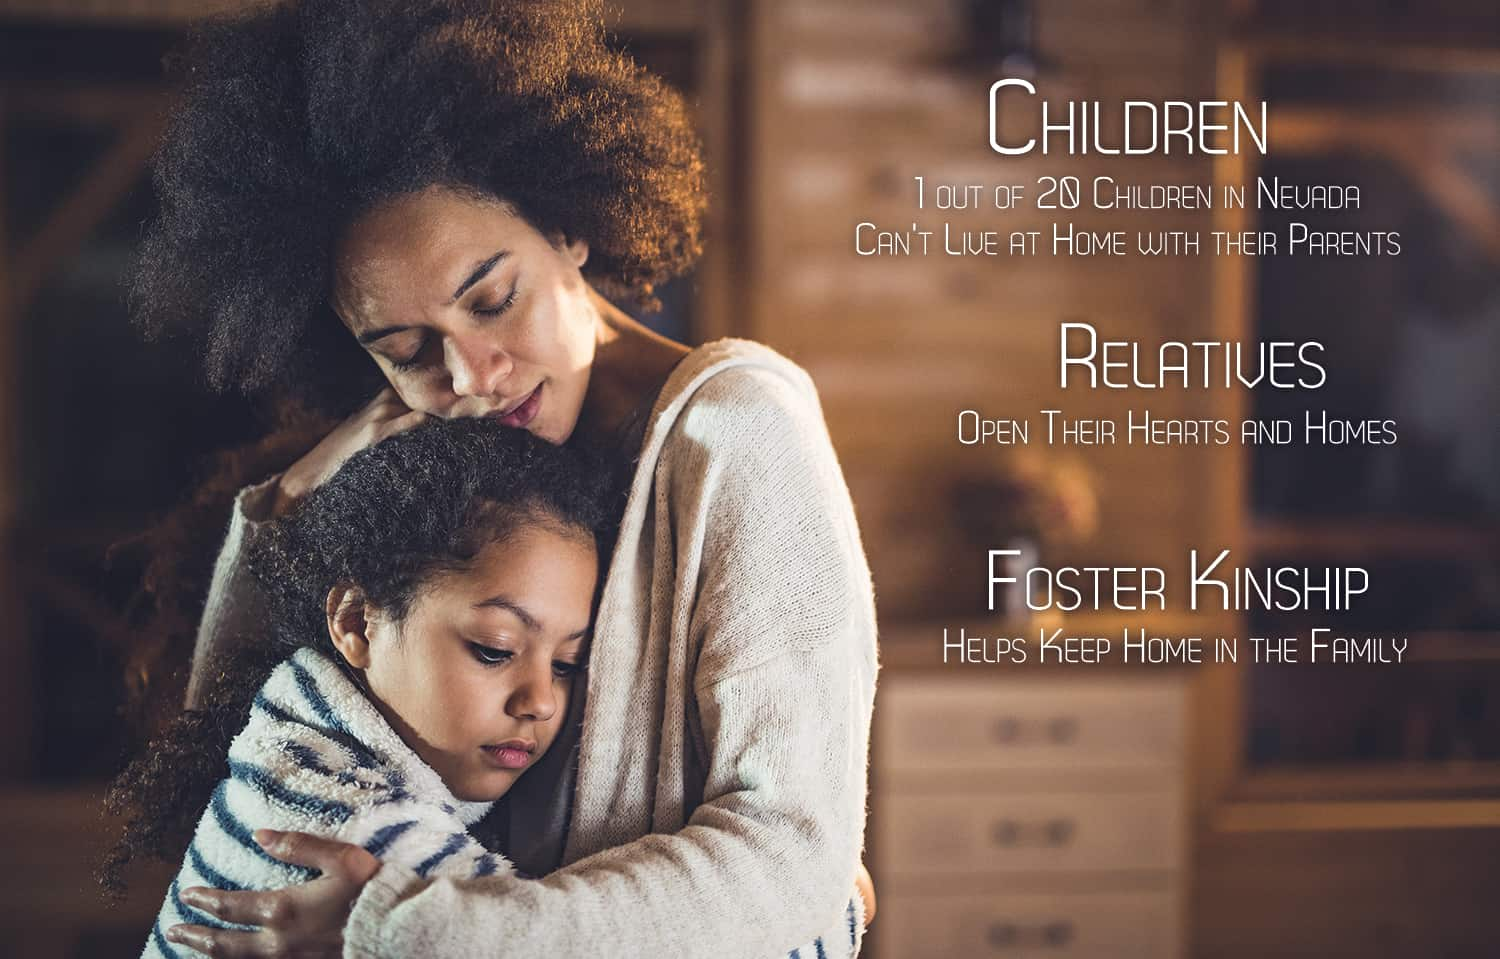 Foster Kinship: Help Keep Home in the Family